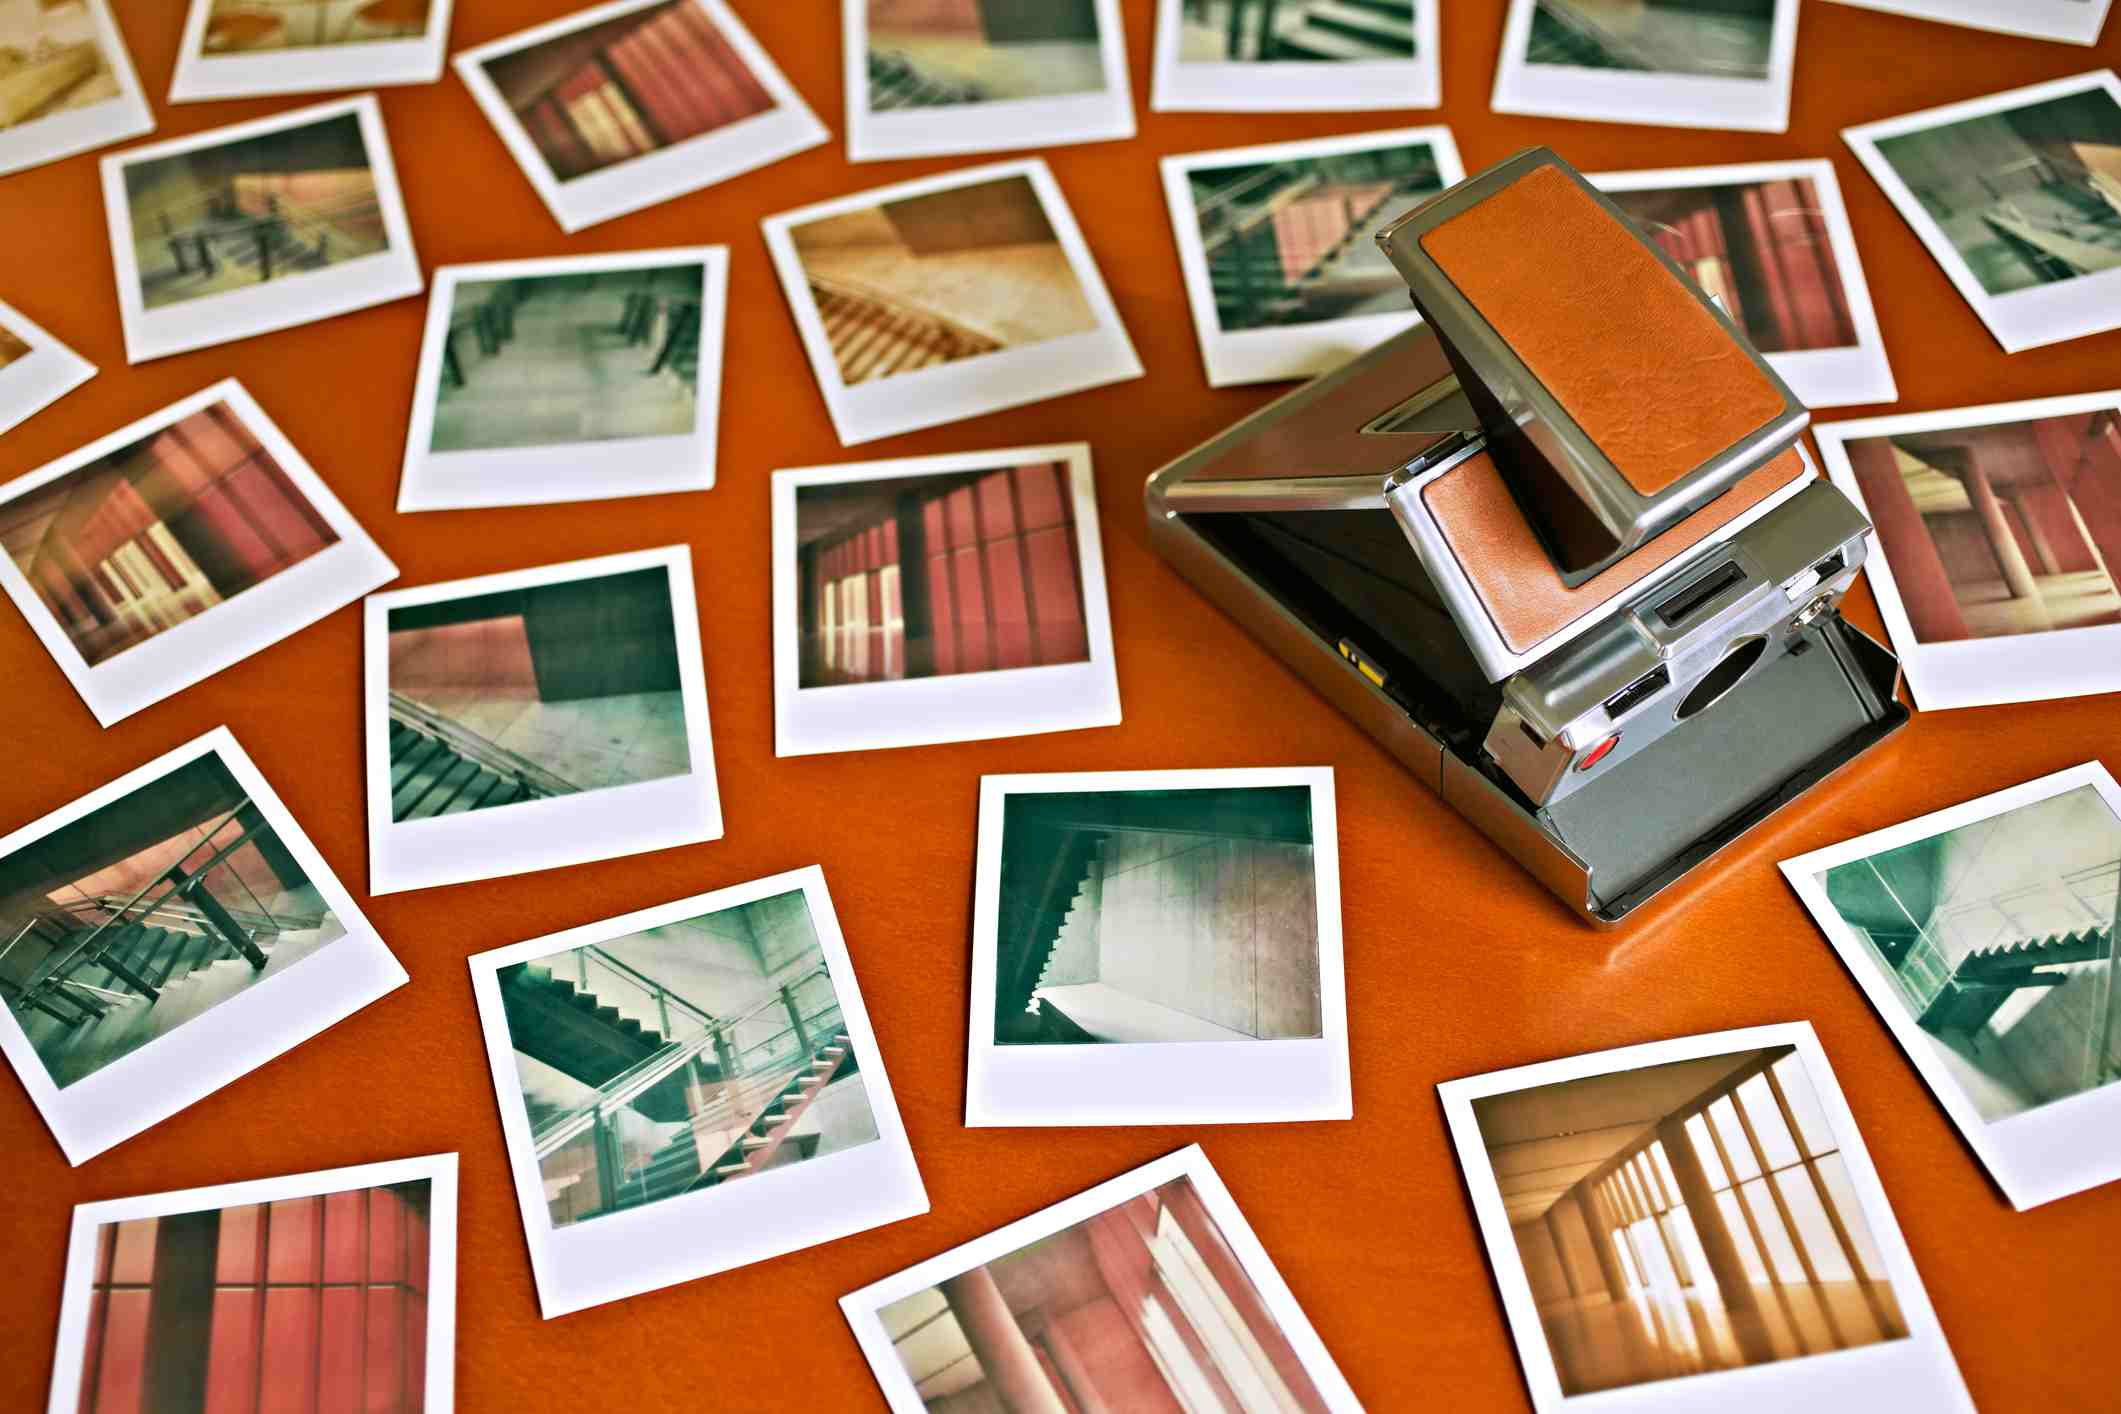 Instant photos and camera from the 1970's